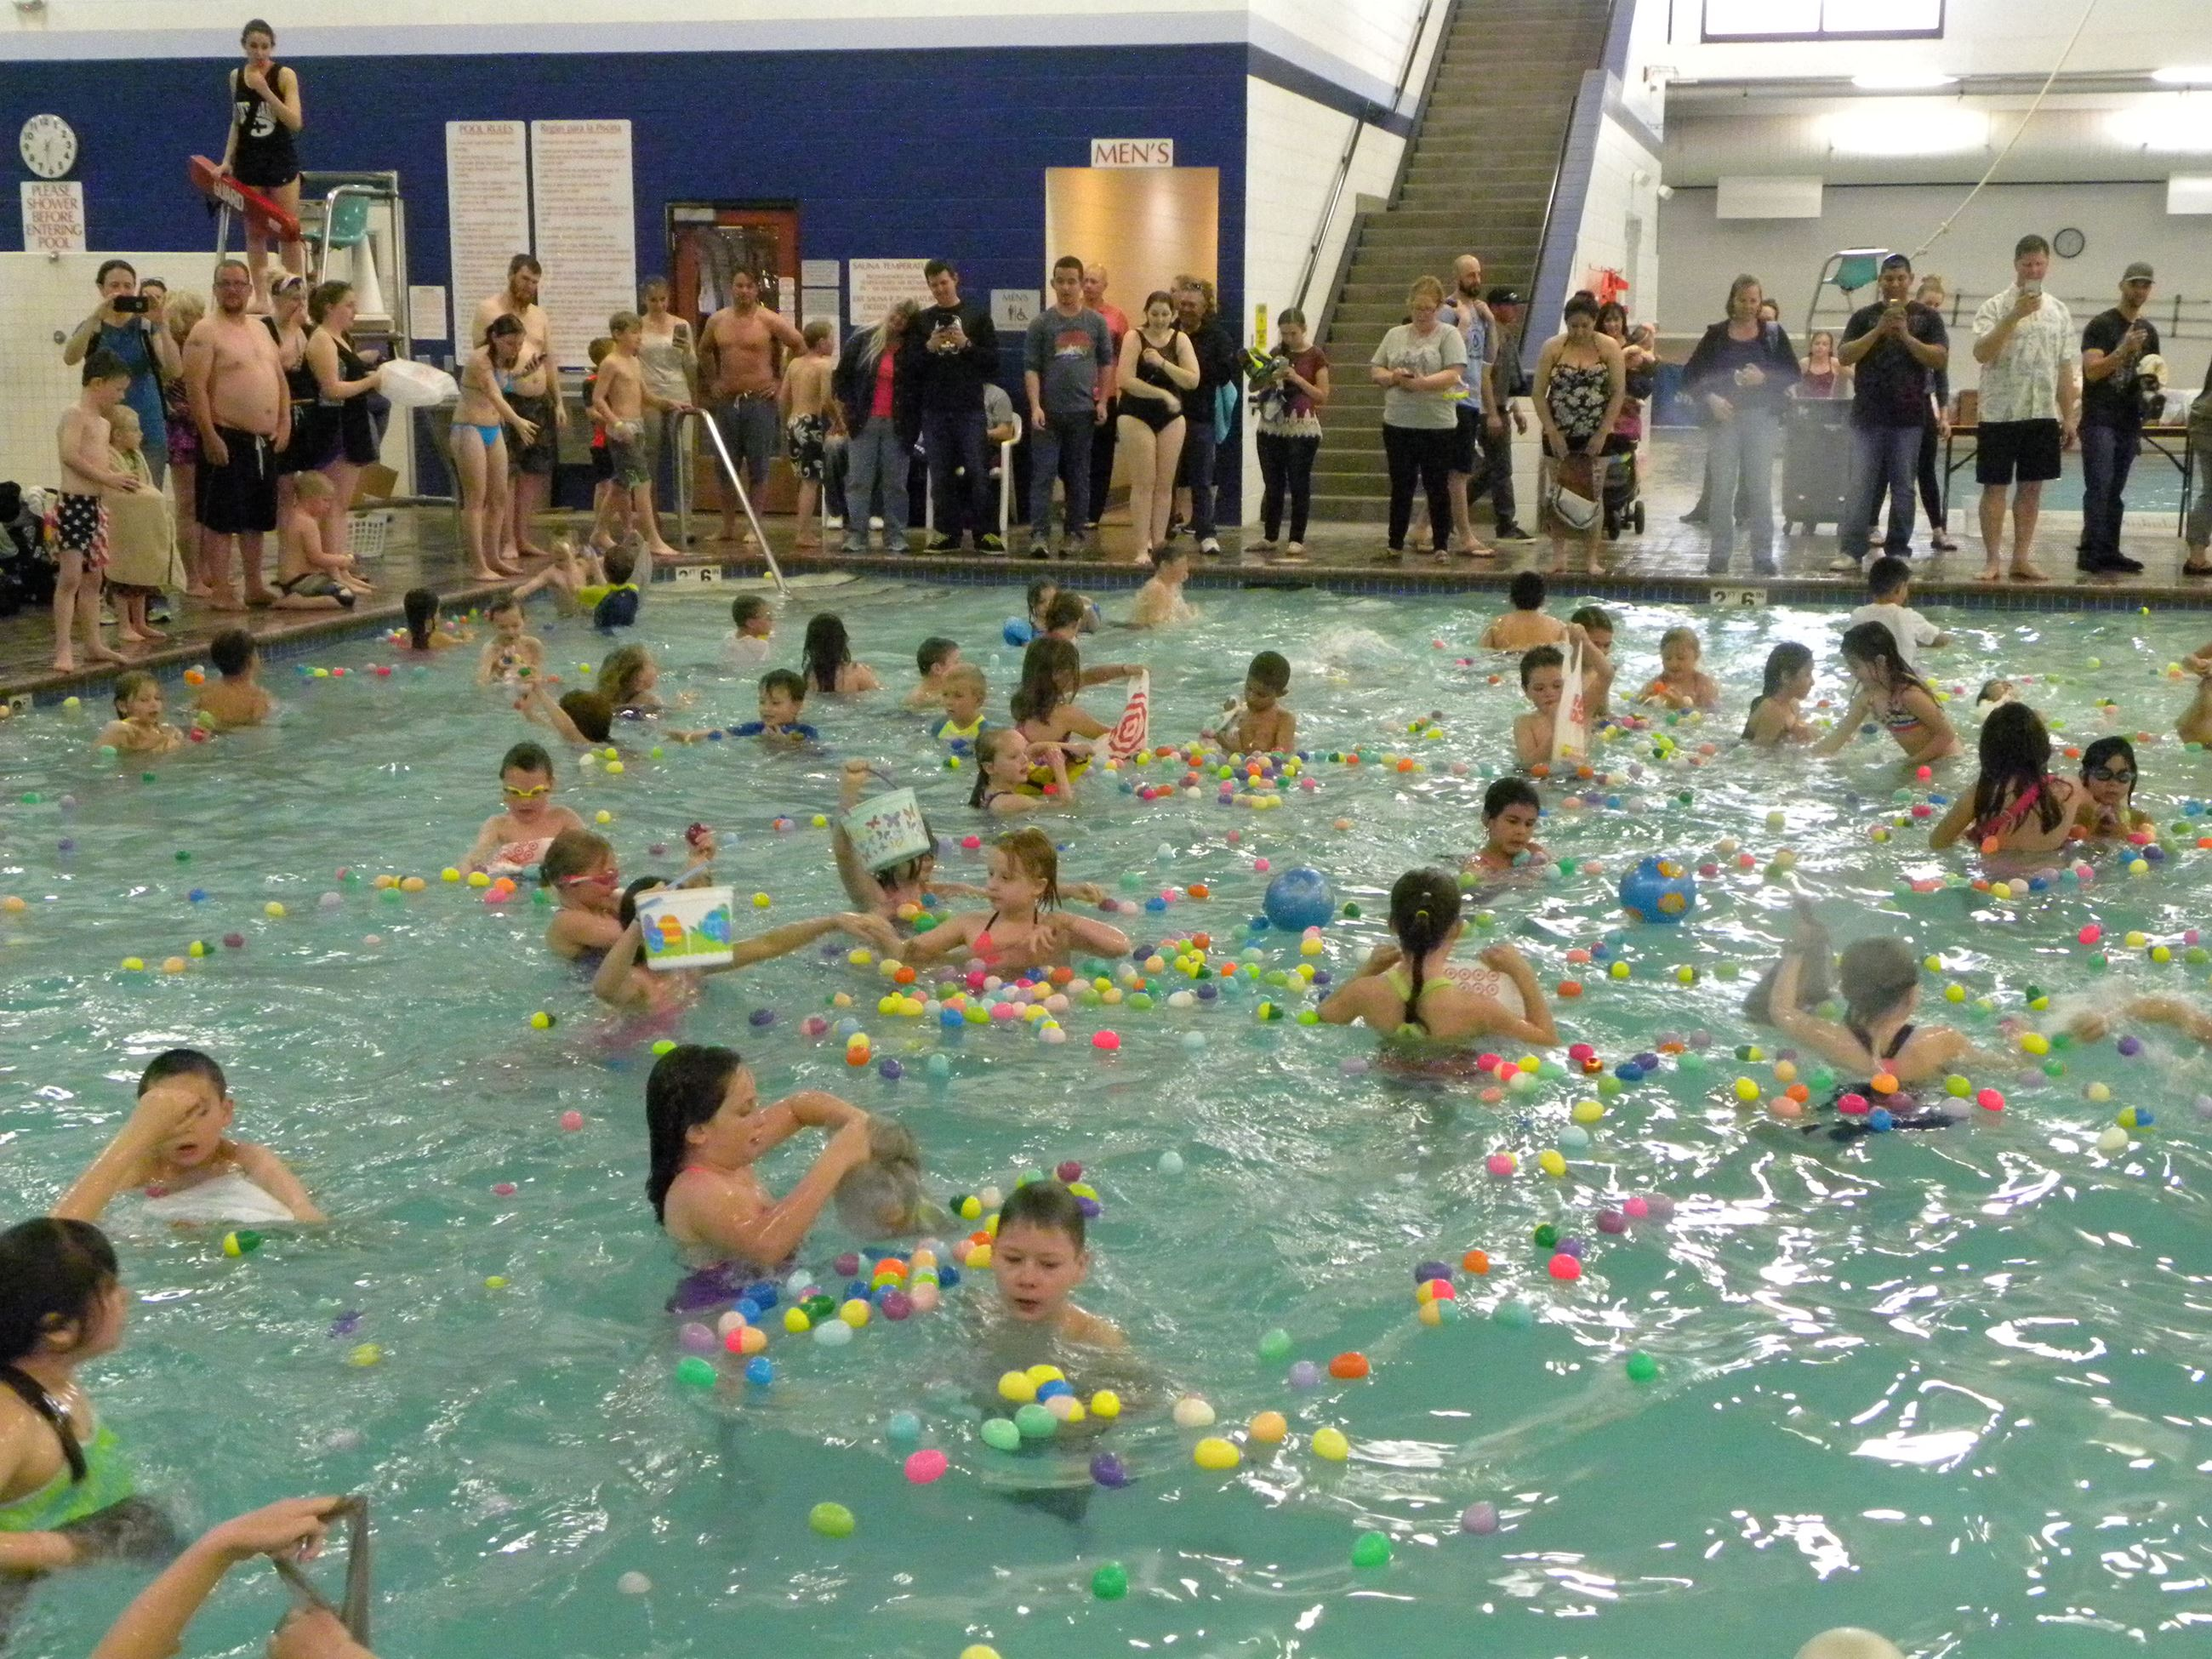 Kids in the swimming pool gathering Easter Eggs at the Easter Egg Swim